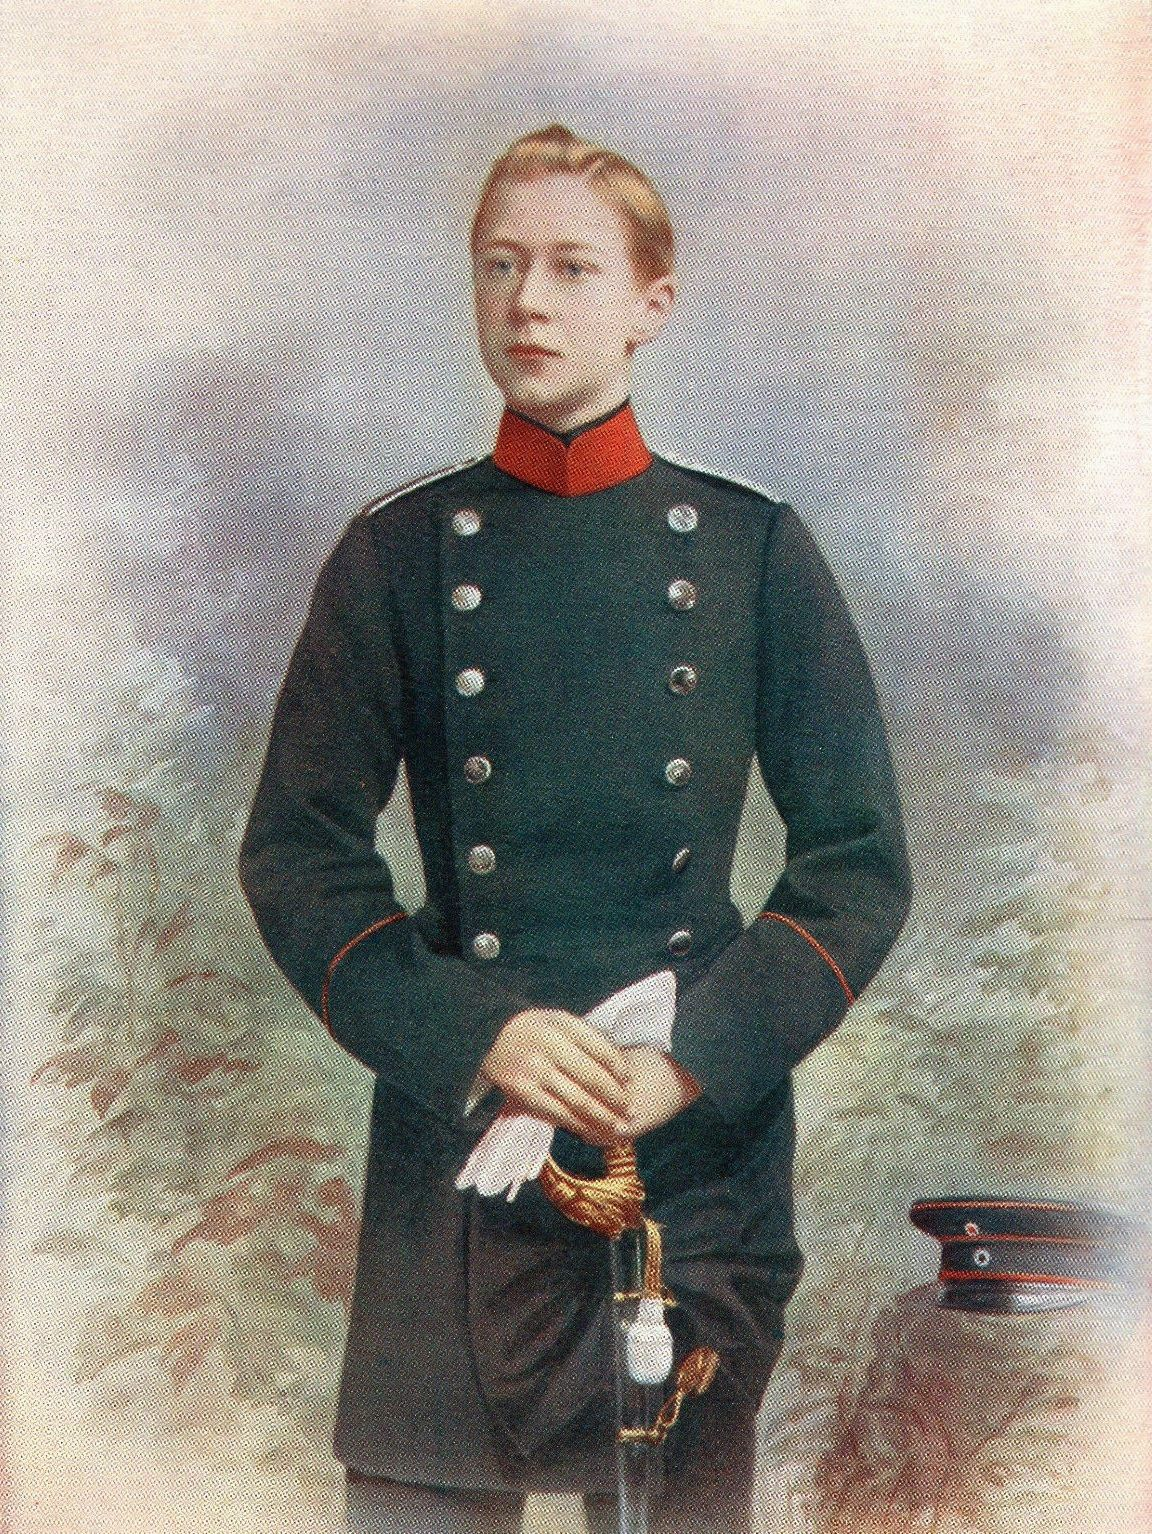 THE PRINCE H I R H  Crown Prince Wilhelm of Germany and Prussia